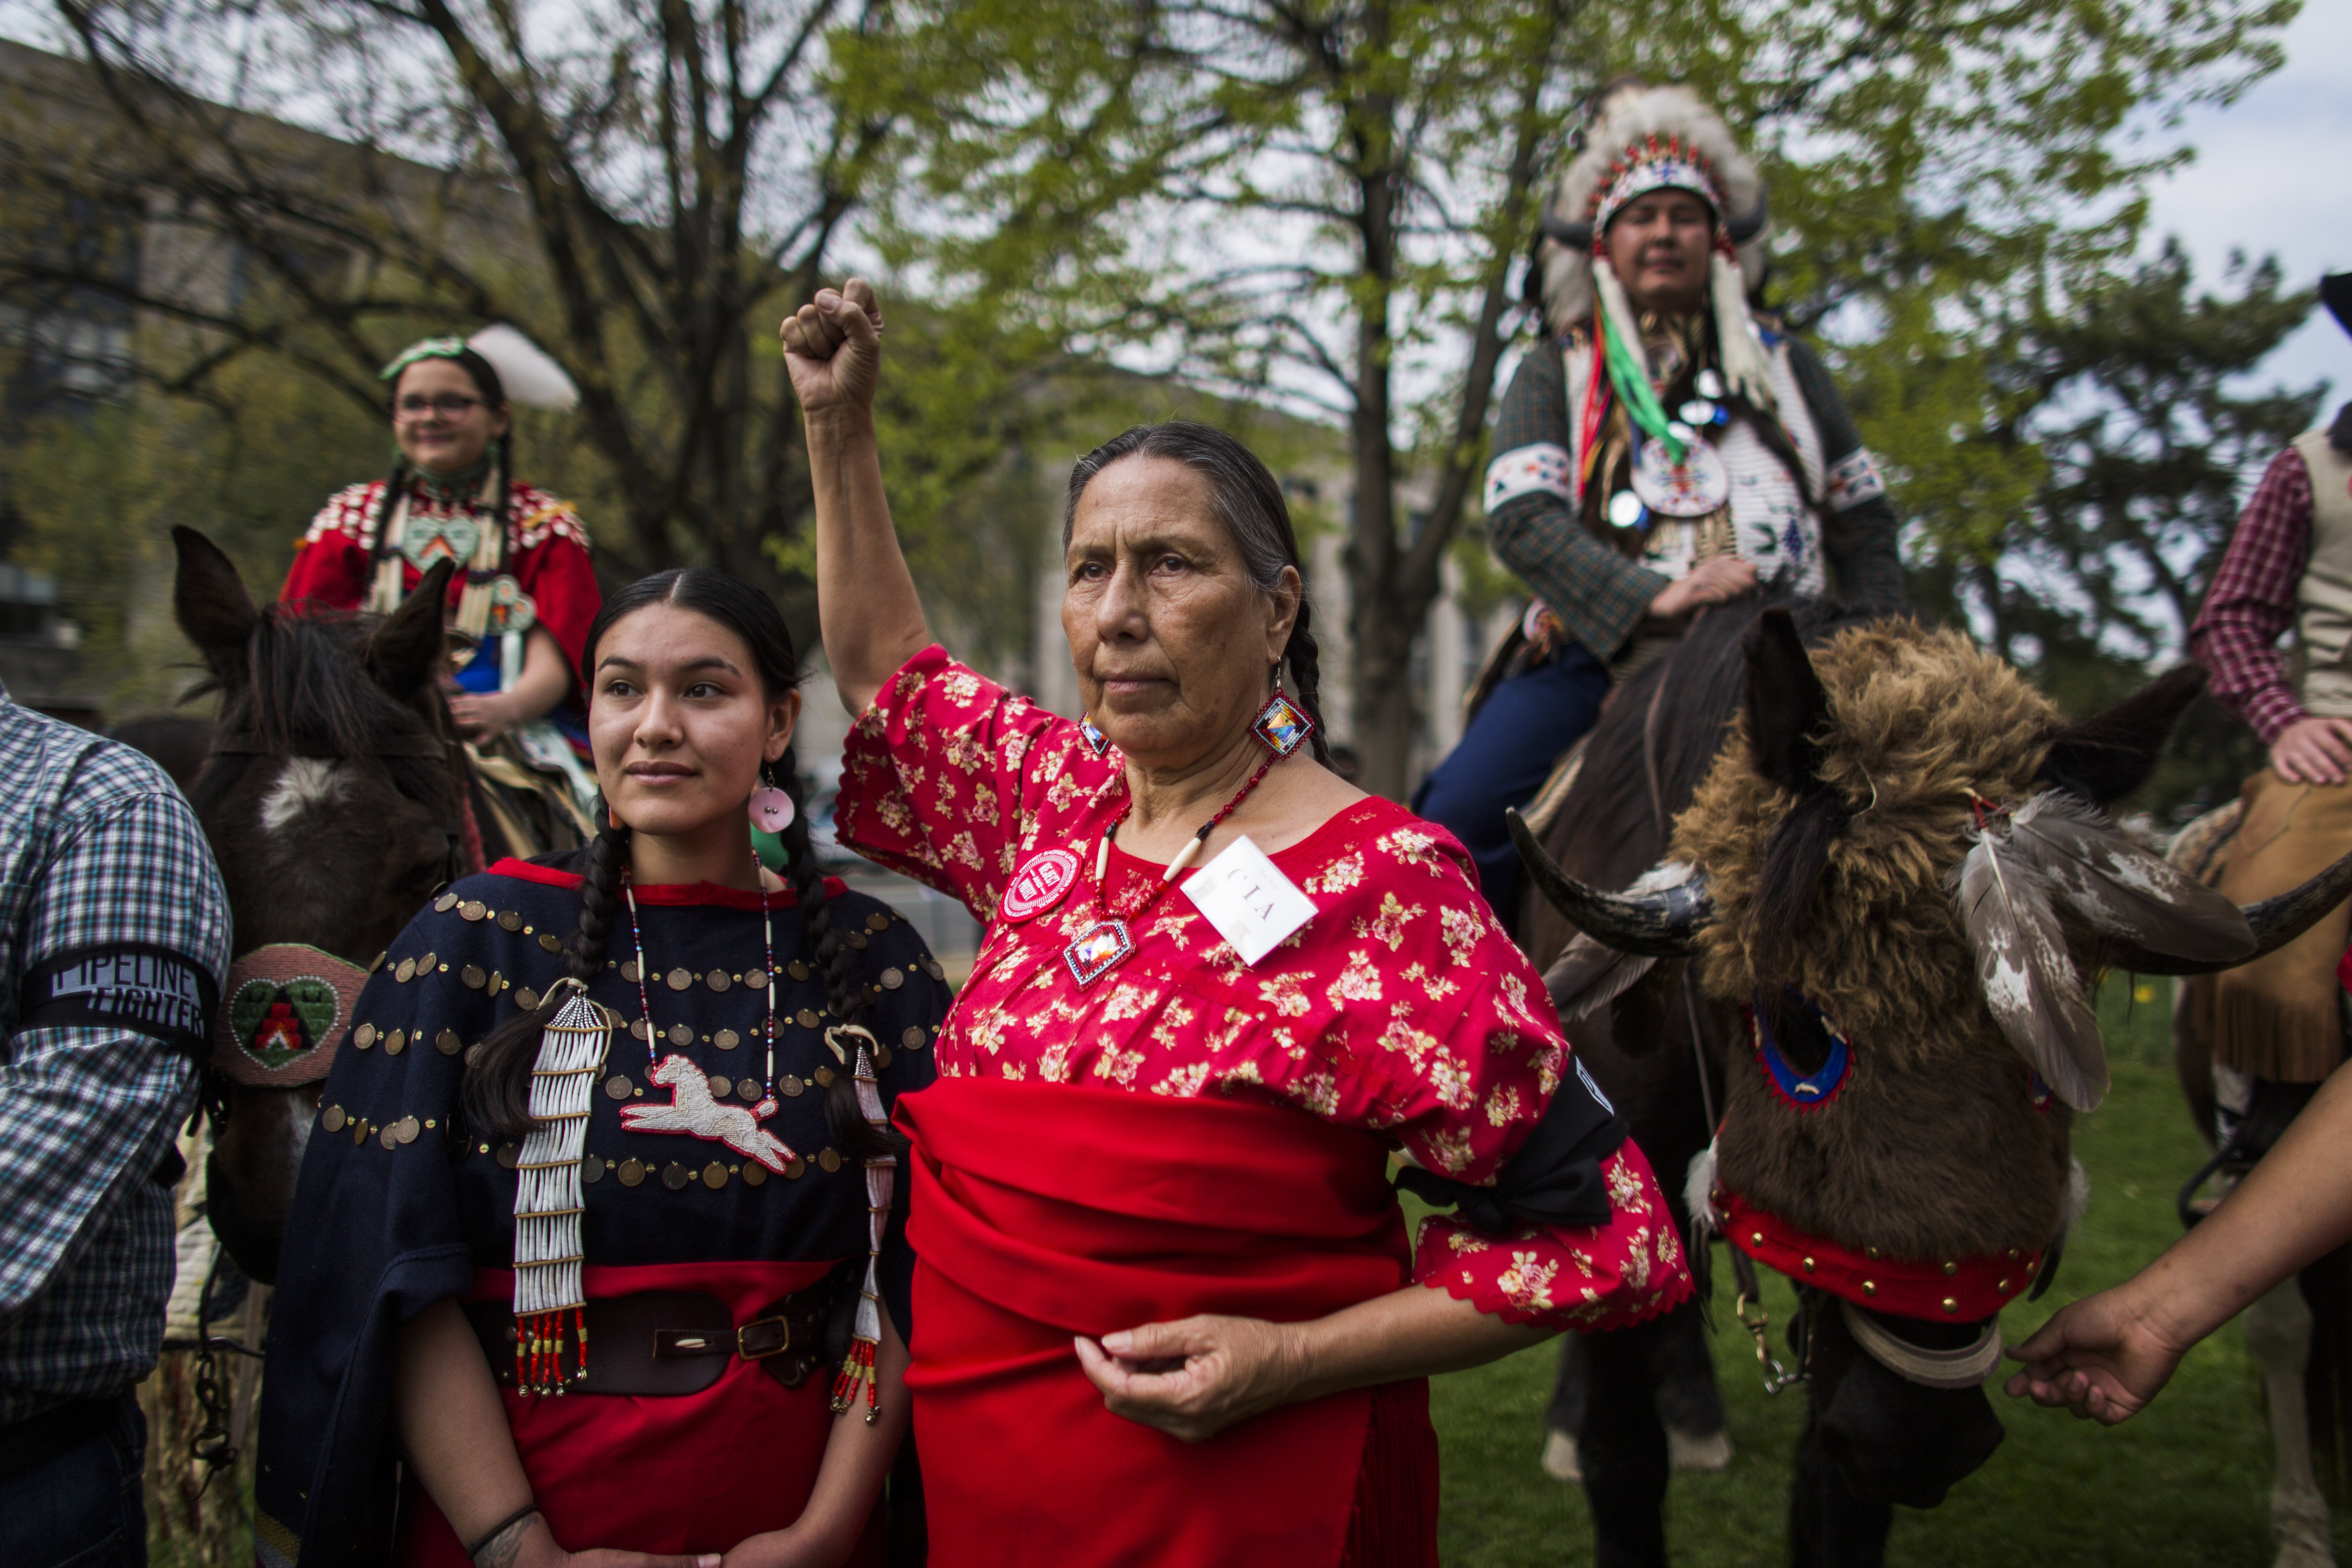 The Editors Native Americans Deserve Tribal Recognition